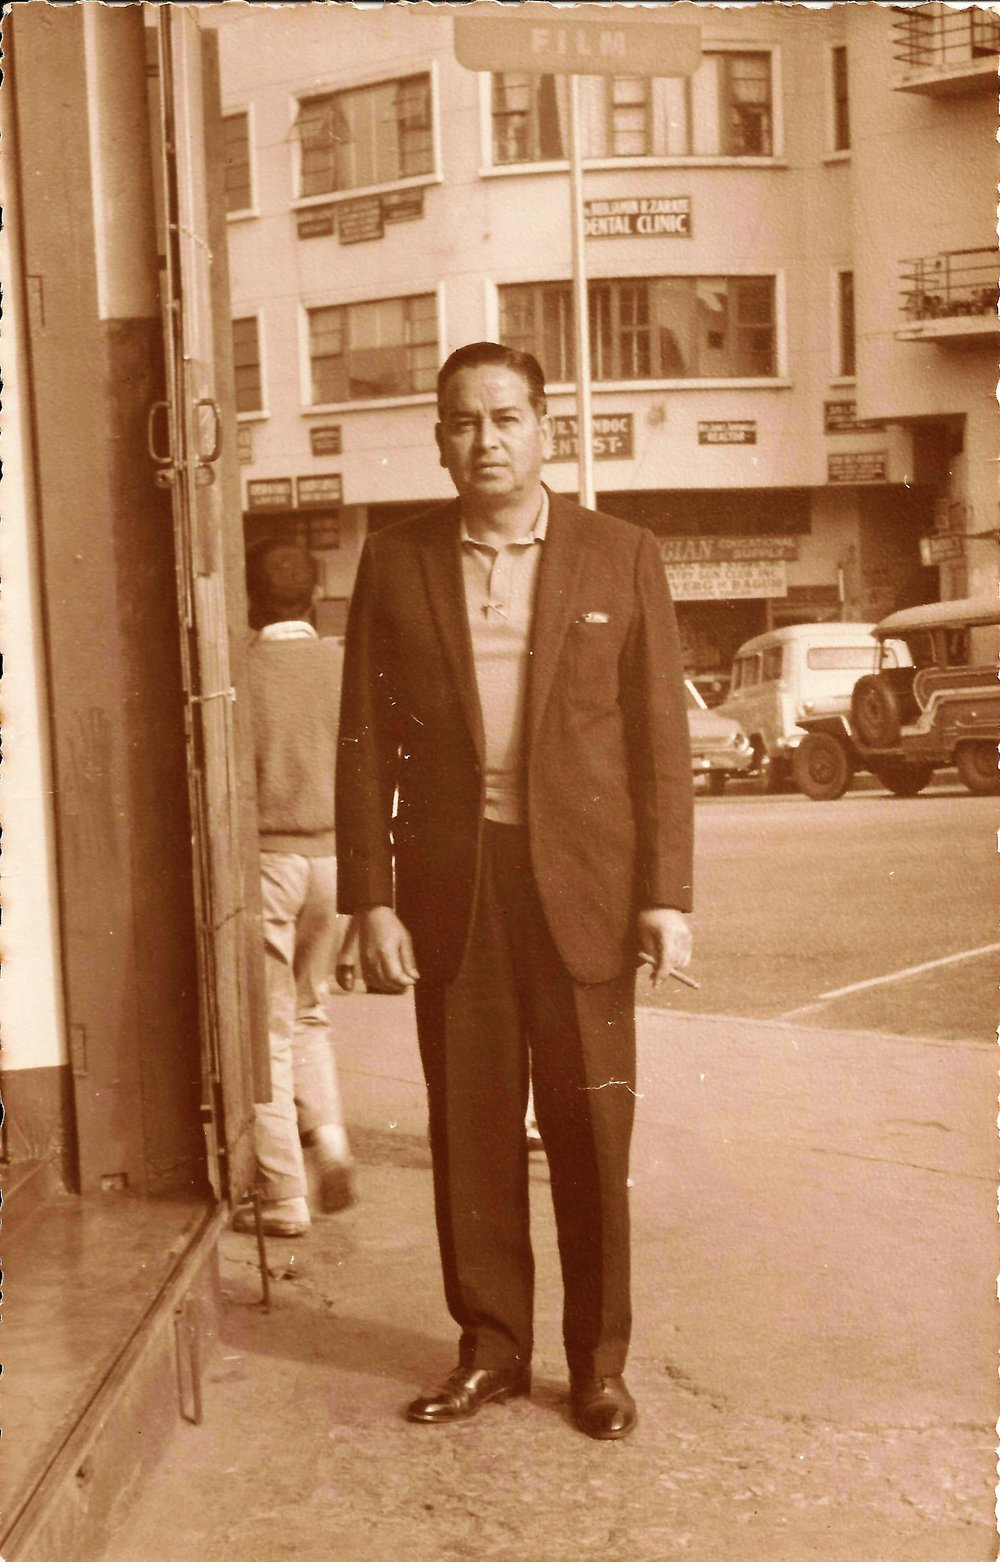 Grandpa with his shiny shoes, cigar, probably cashmere sweater and what's that in his top pocket? A hanky. Stylish. He insisted in very good quality over quantity always. Not shown:his gold pocket watch.